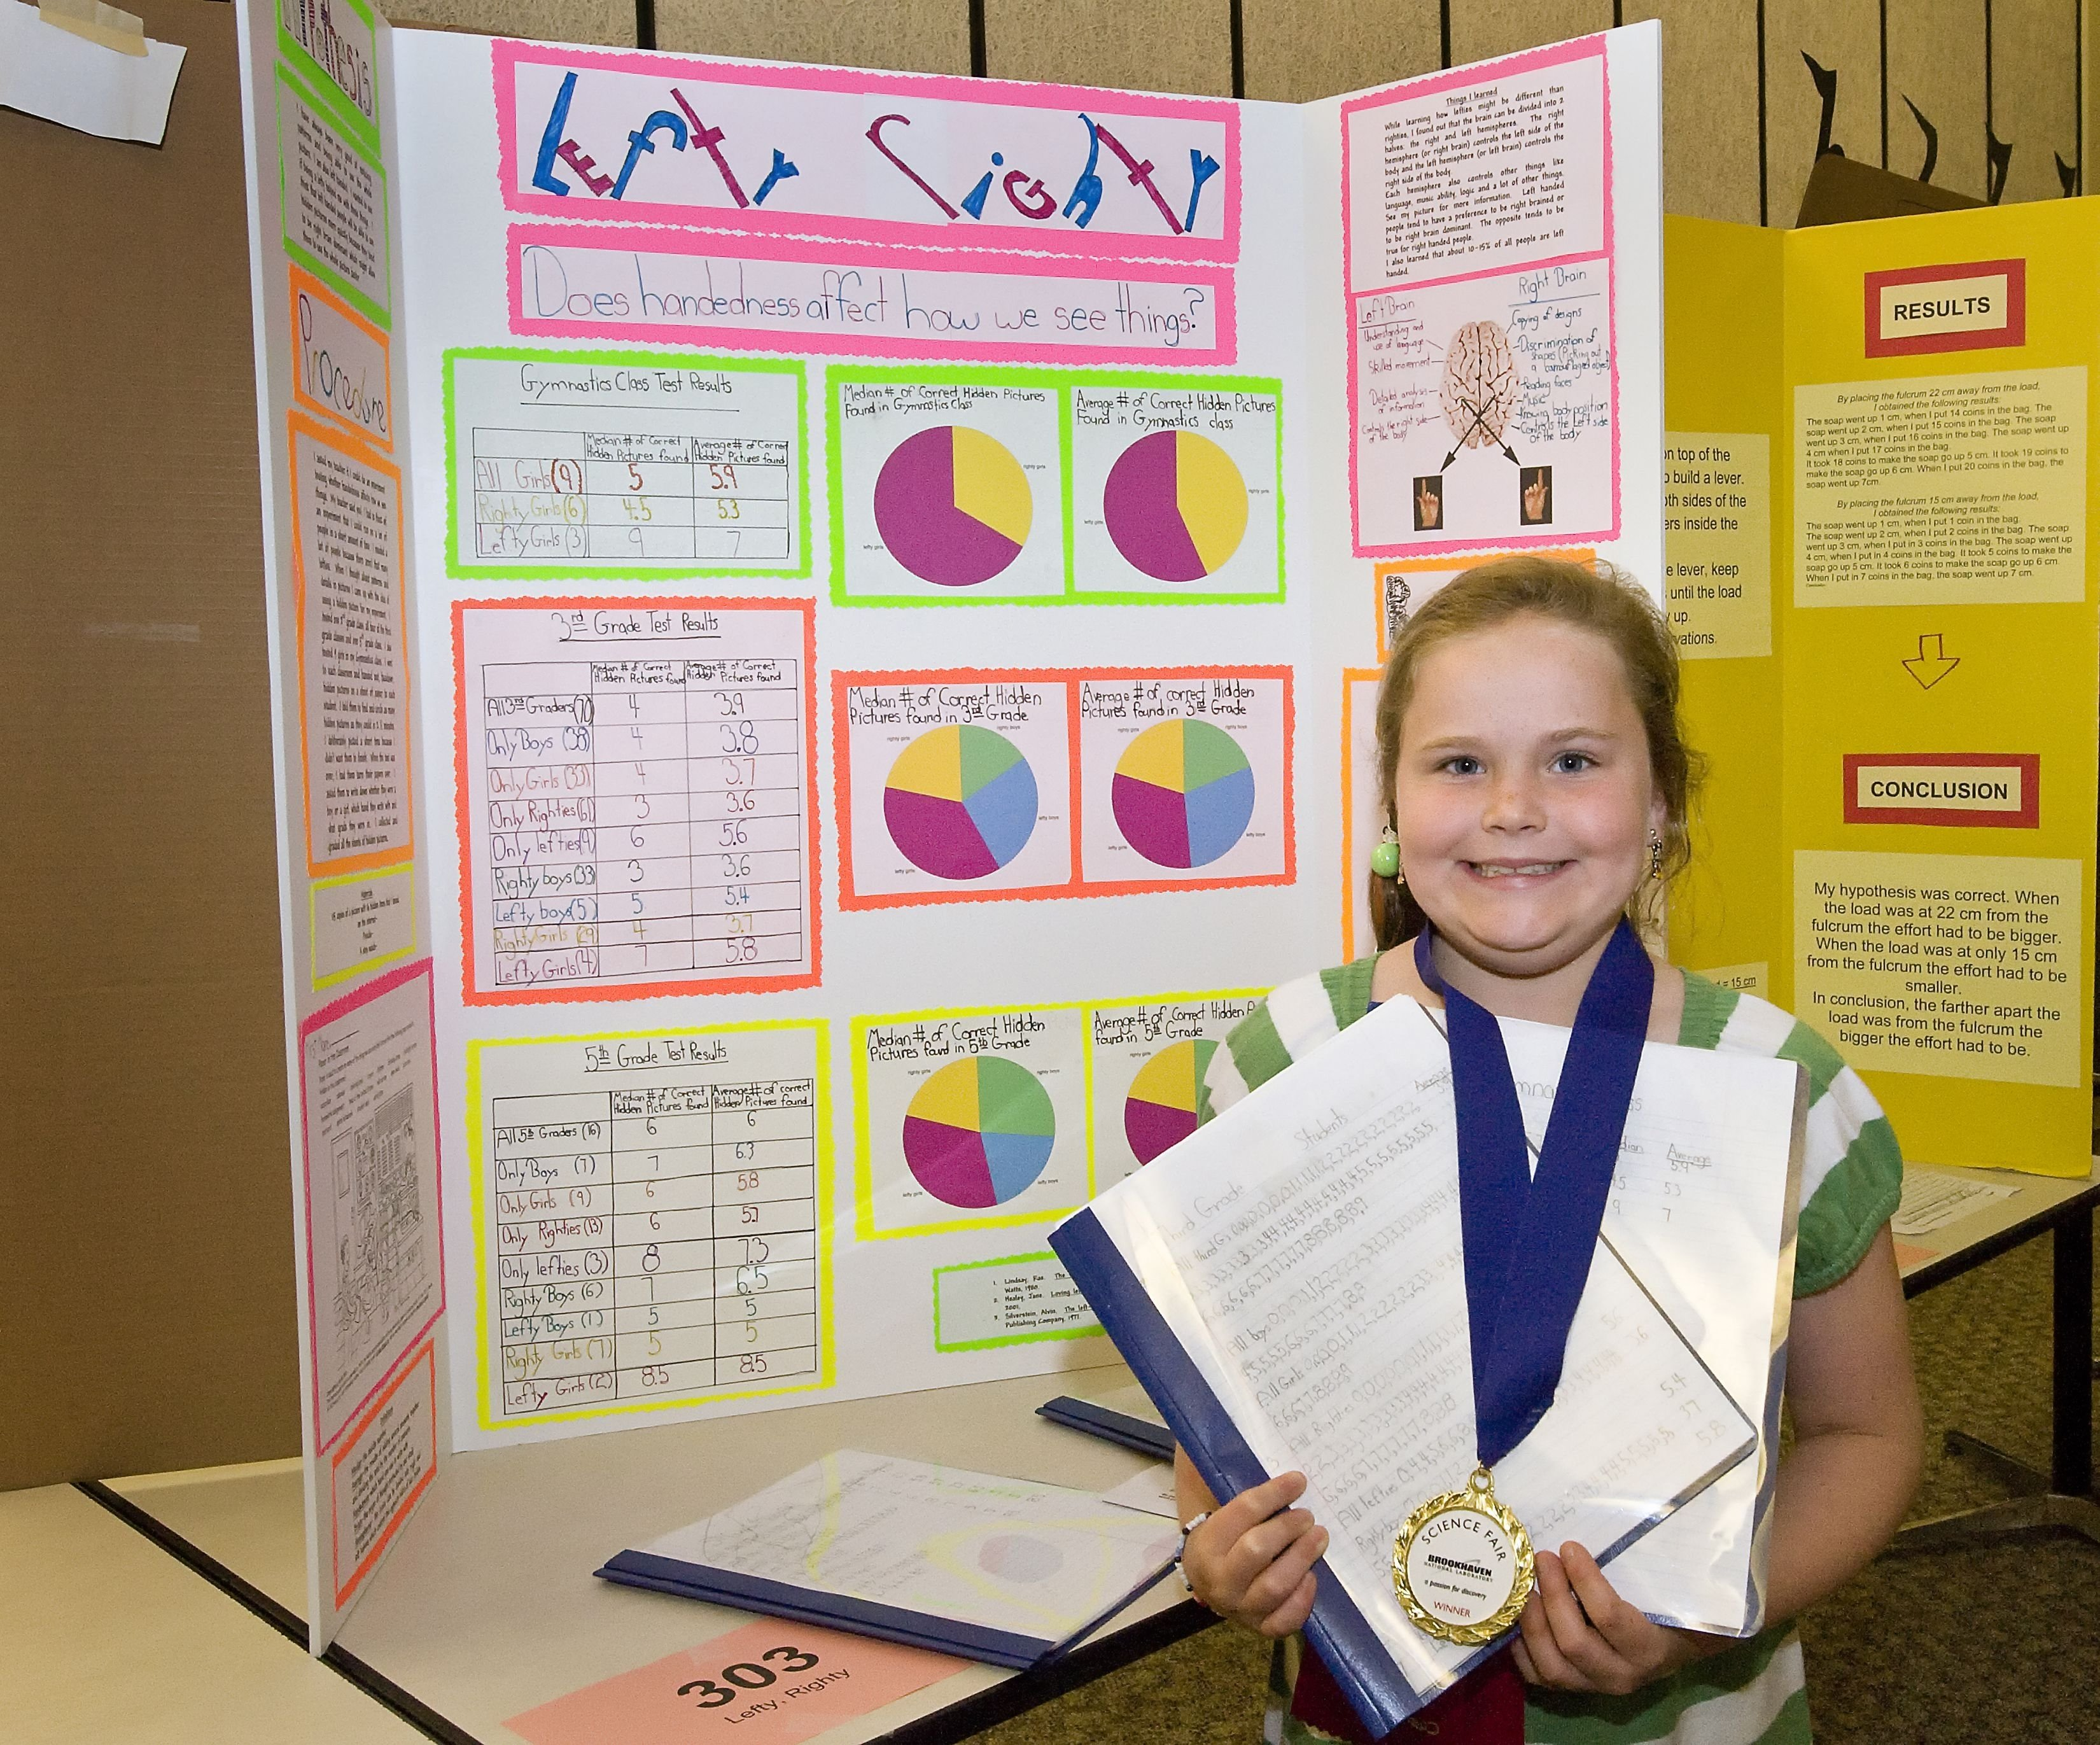 10 Most Popular Science Fair Projects Ideas For 3Rd Grade 3rd grade science fair project ideas learning tools pinterest 2 2020